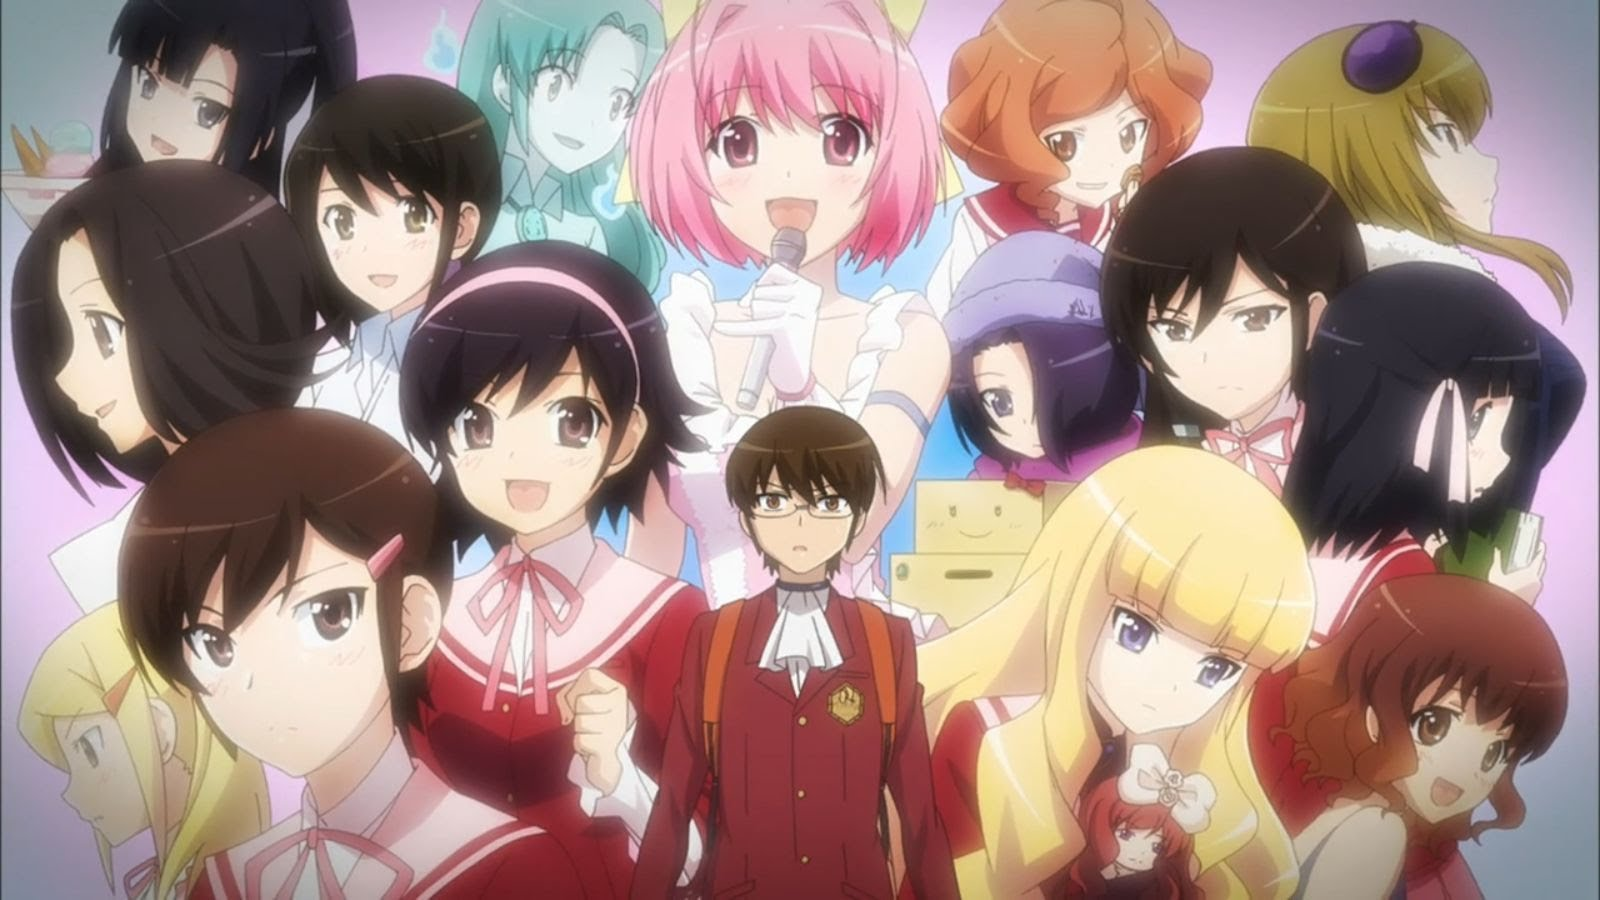 Ultra Hd The World God Only Knows Wallpapers 1796064 Hd